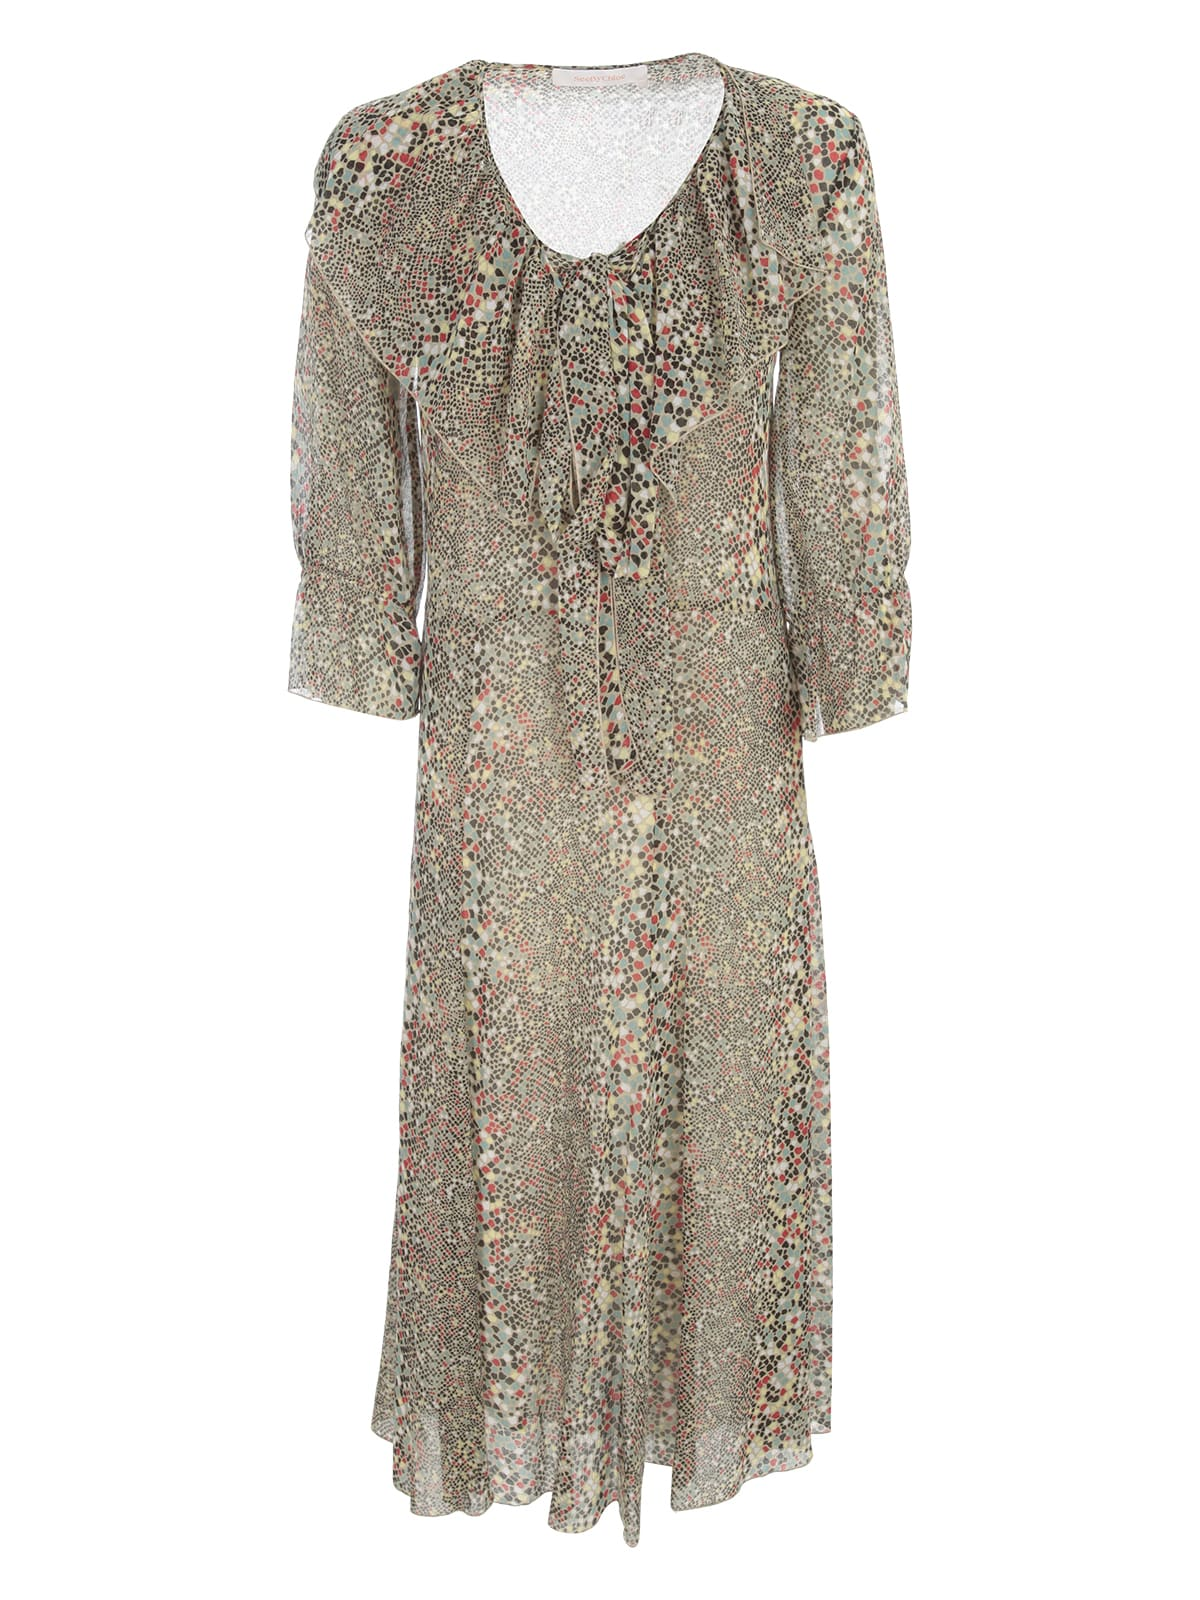 Buy See by Chloé Maxi Dress 3/4s Crew Neck online, shop See by Chloé with free shipping